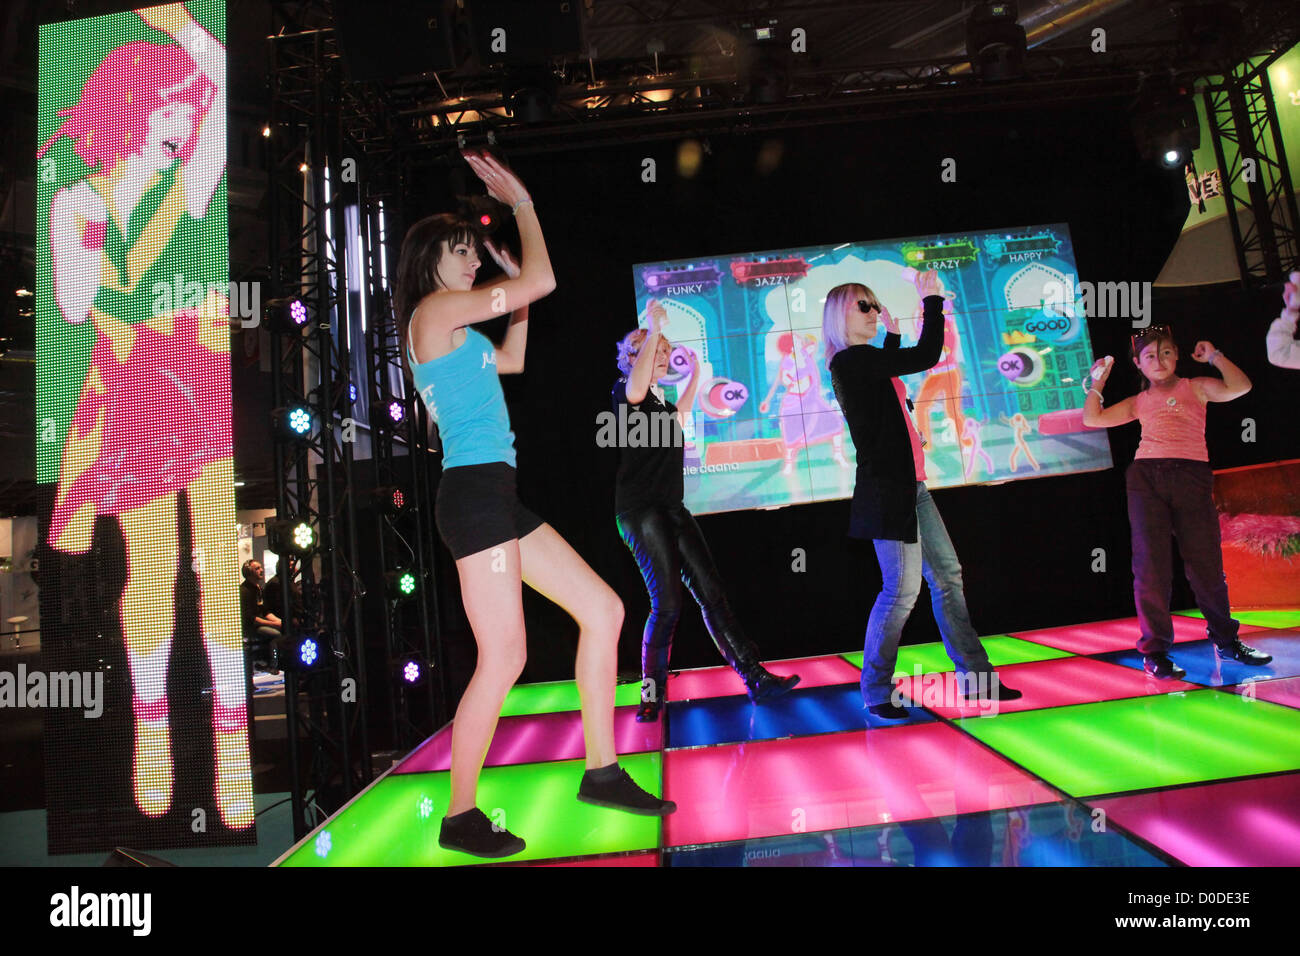 Interactive Games Stock Photos   Interactive Games Stock Images   Alamy INTERACTIVE DANCE VIDEO GAME PARIS GAMES WEEK 2011   Stock Image